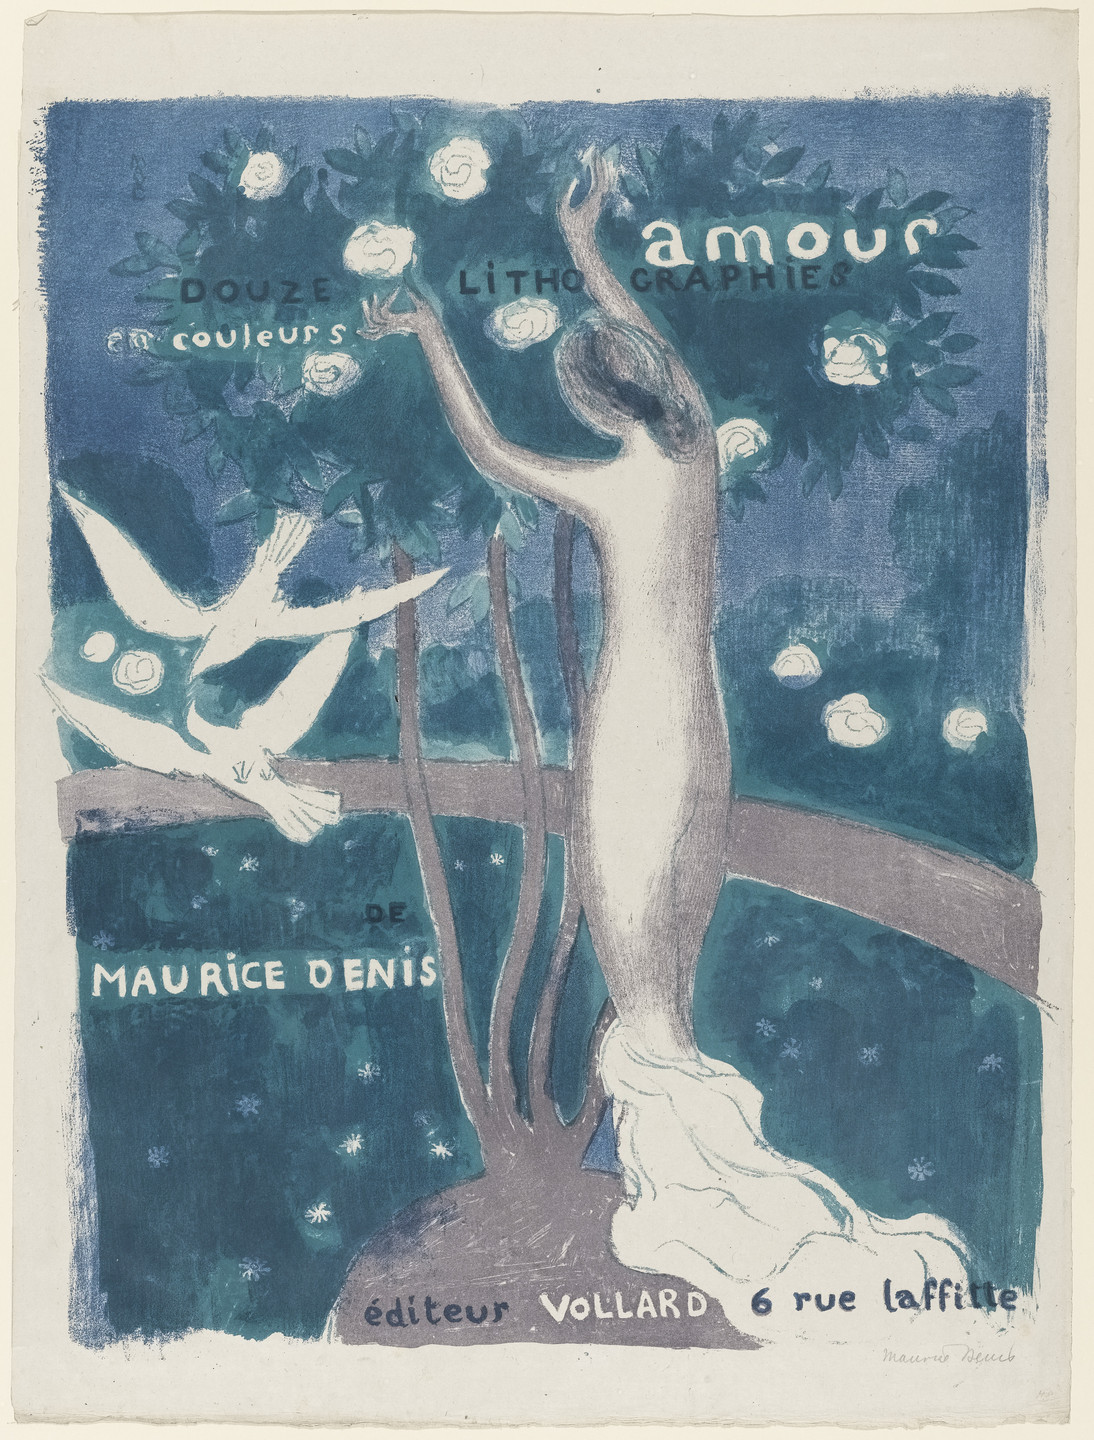 Maurice Denis. Title page from the portfolio Love (Amour). (1899)